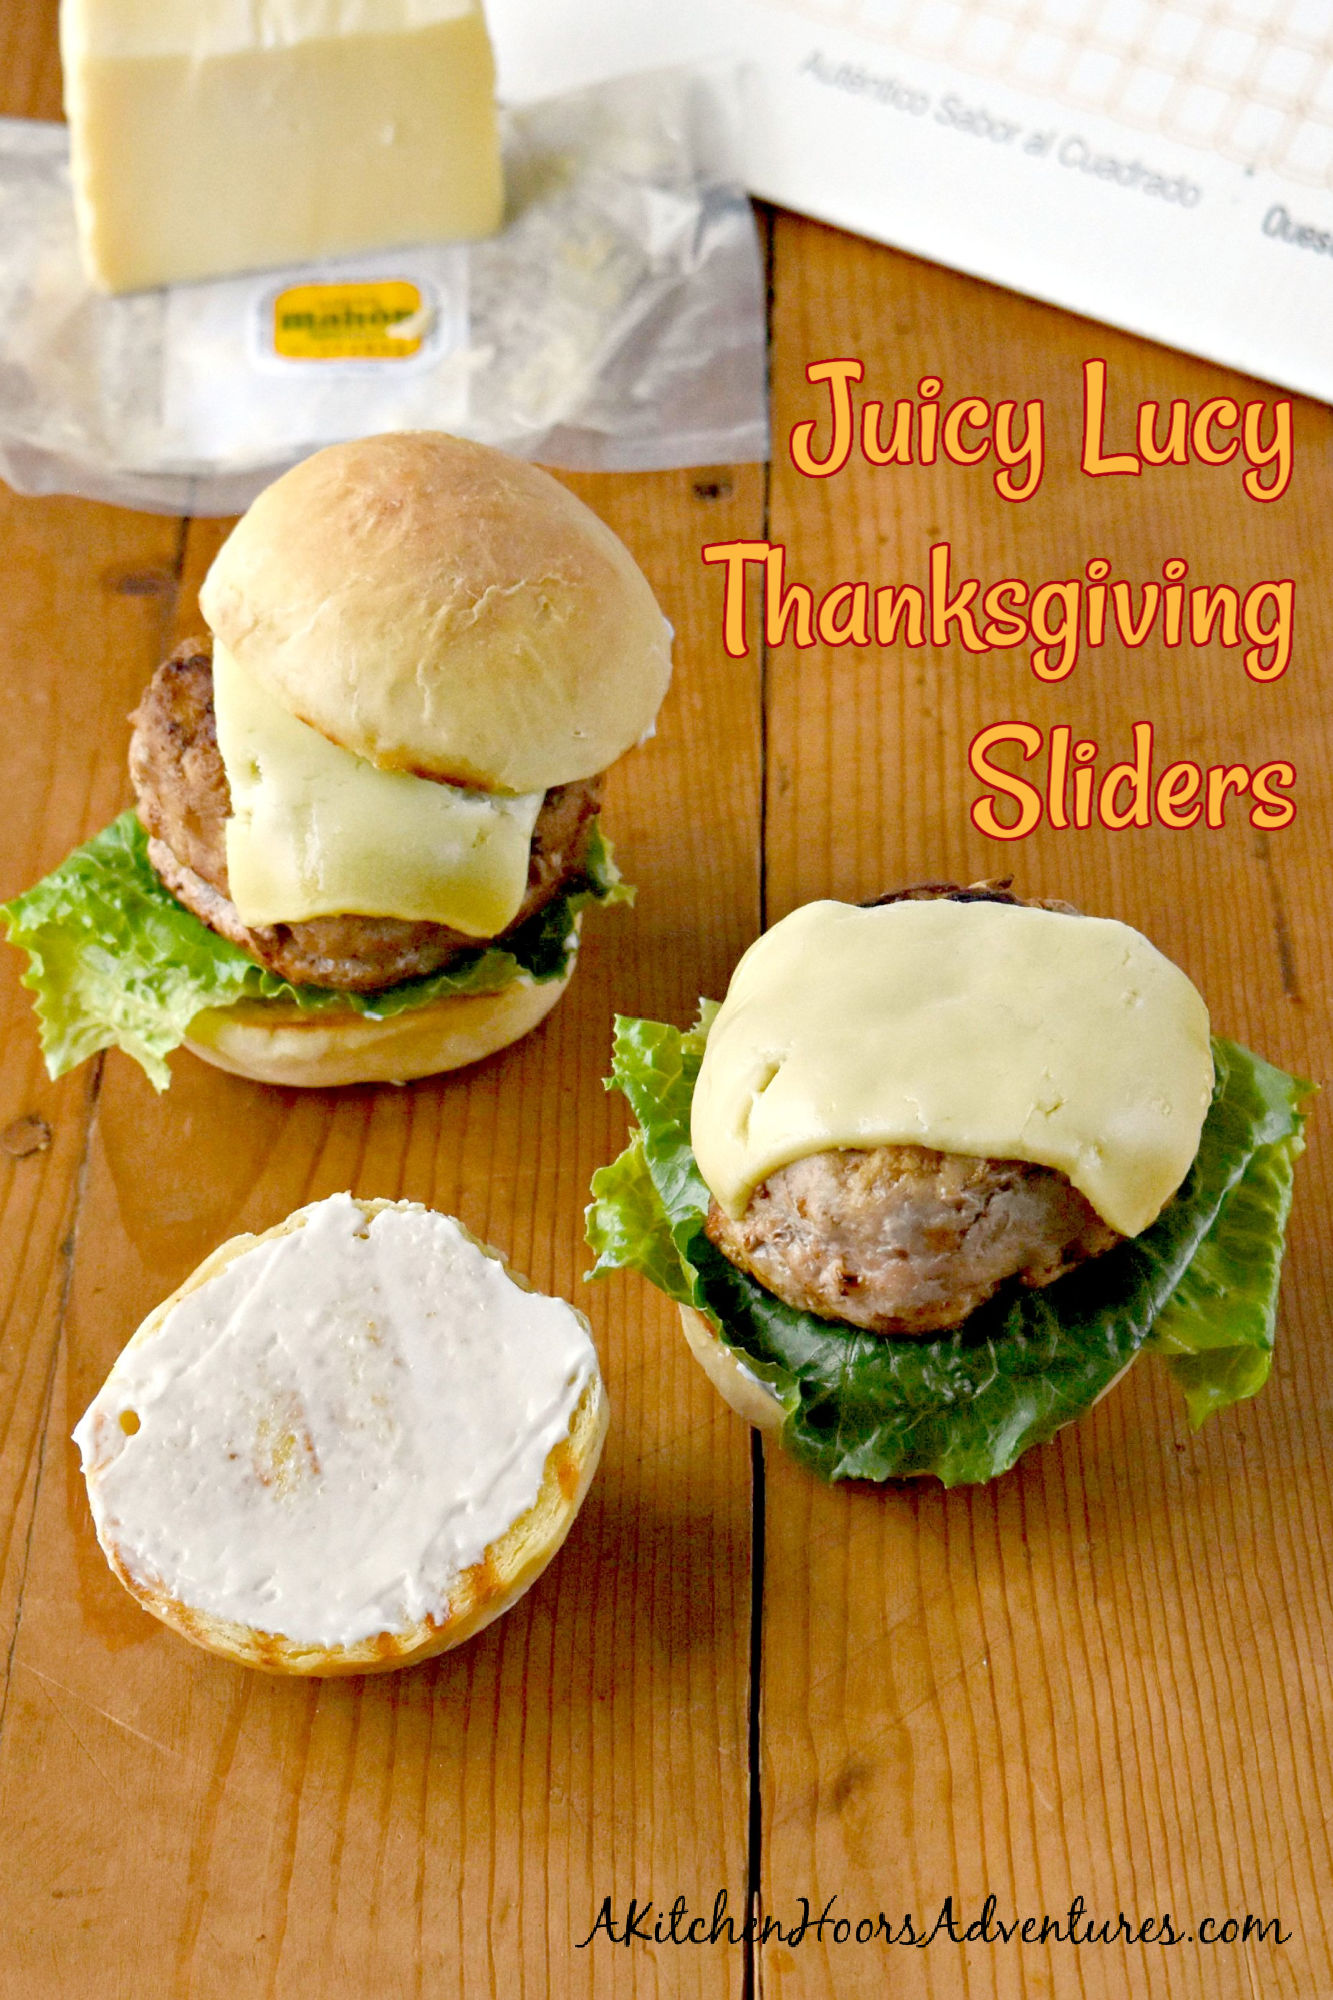 Leftover cranberry sauce and cheese from your charcuterie board combines to make Juicy Lucy Thanksgiving Sliders! A fun and delicious lunch for the family.